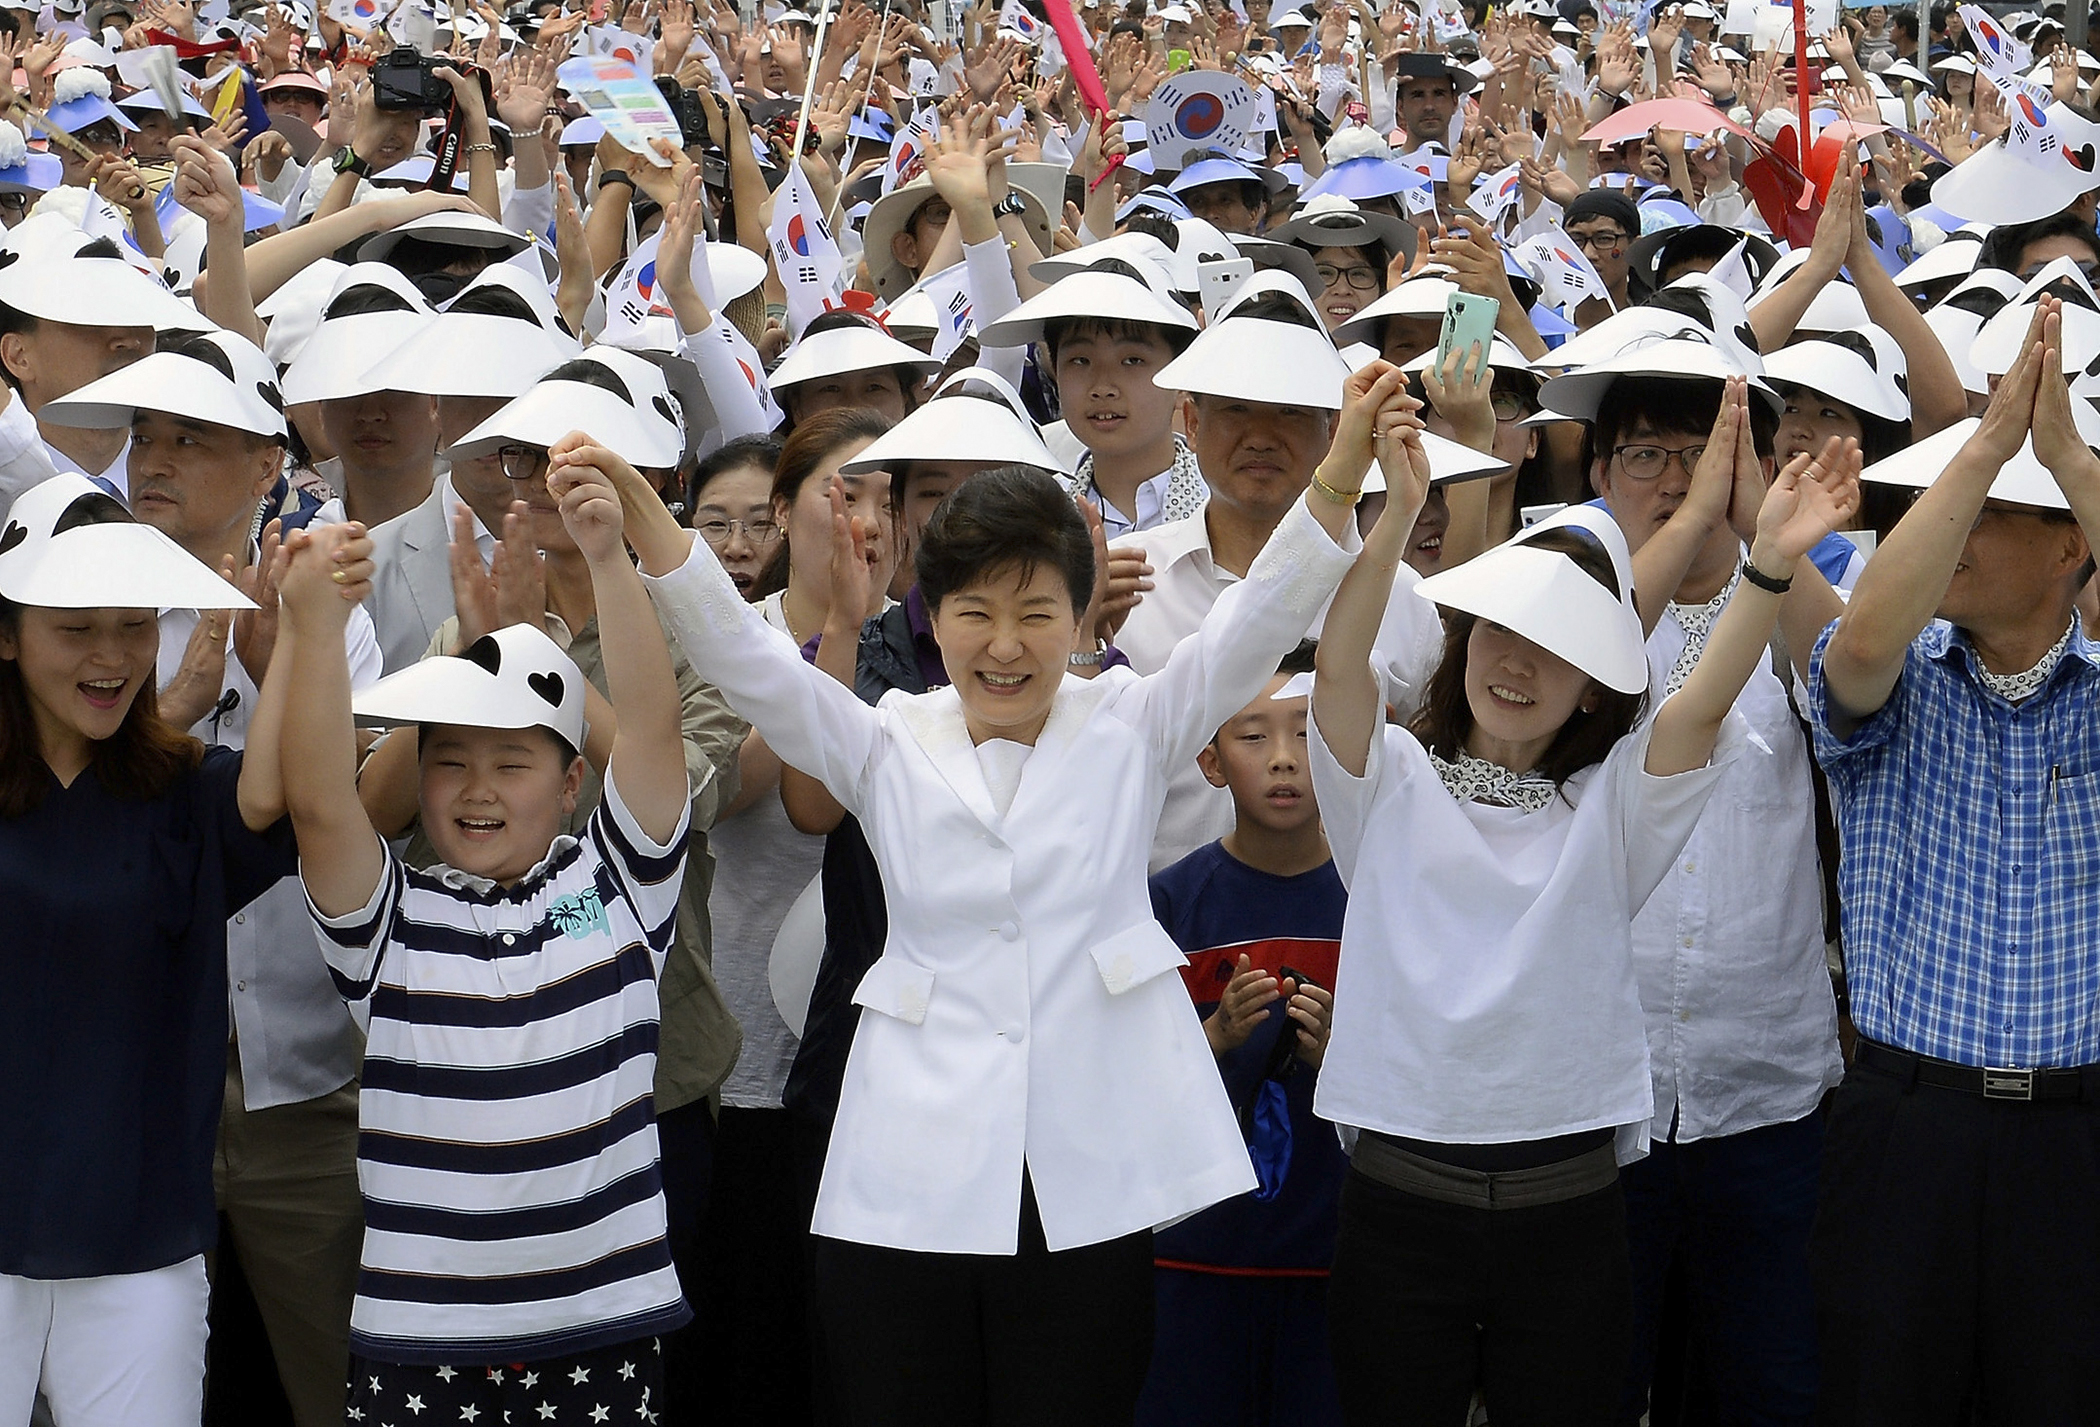 South Korean President Park Geun-Hye gives three cheers during a ceremony to celebrate the 70th Independence Day on August 15, 2015 in Seoul, South Korea. Korea was liberated from Japan's 35-year colonial rule on August 15, 1945 at the end of World War II.